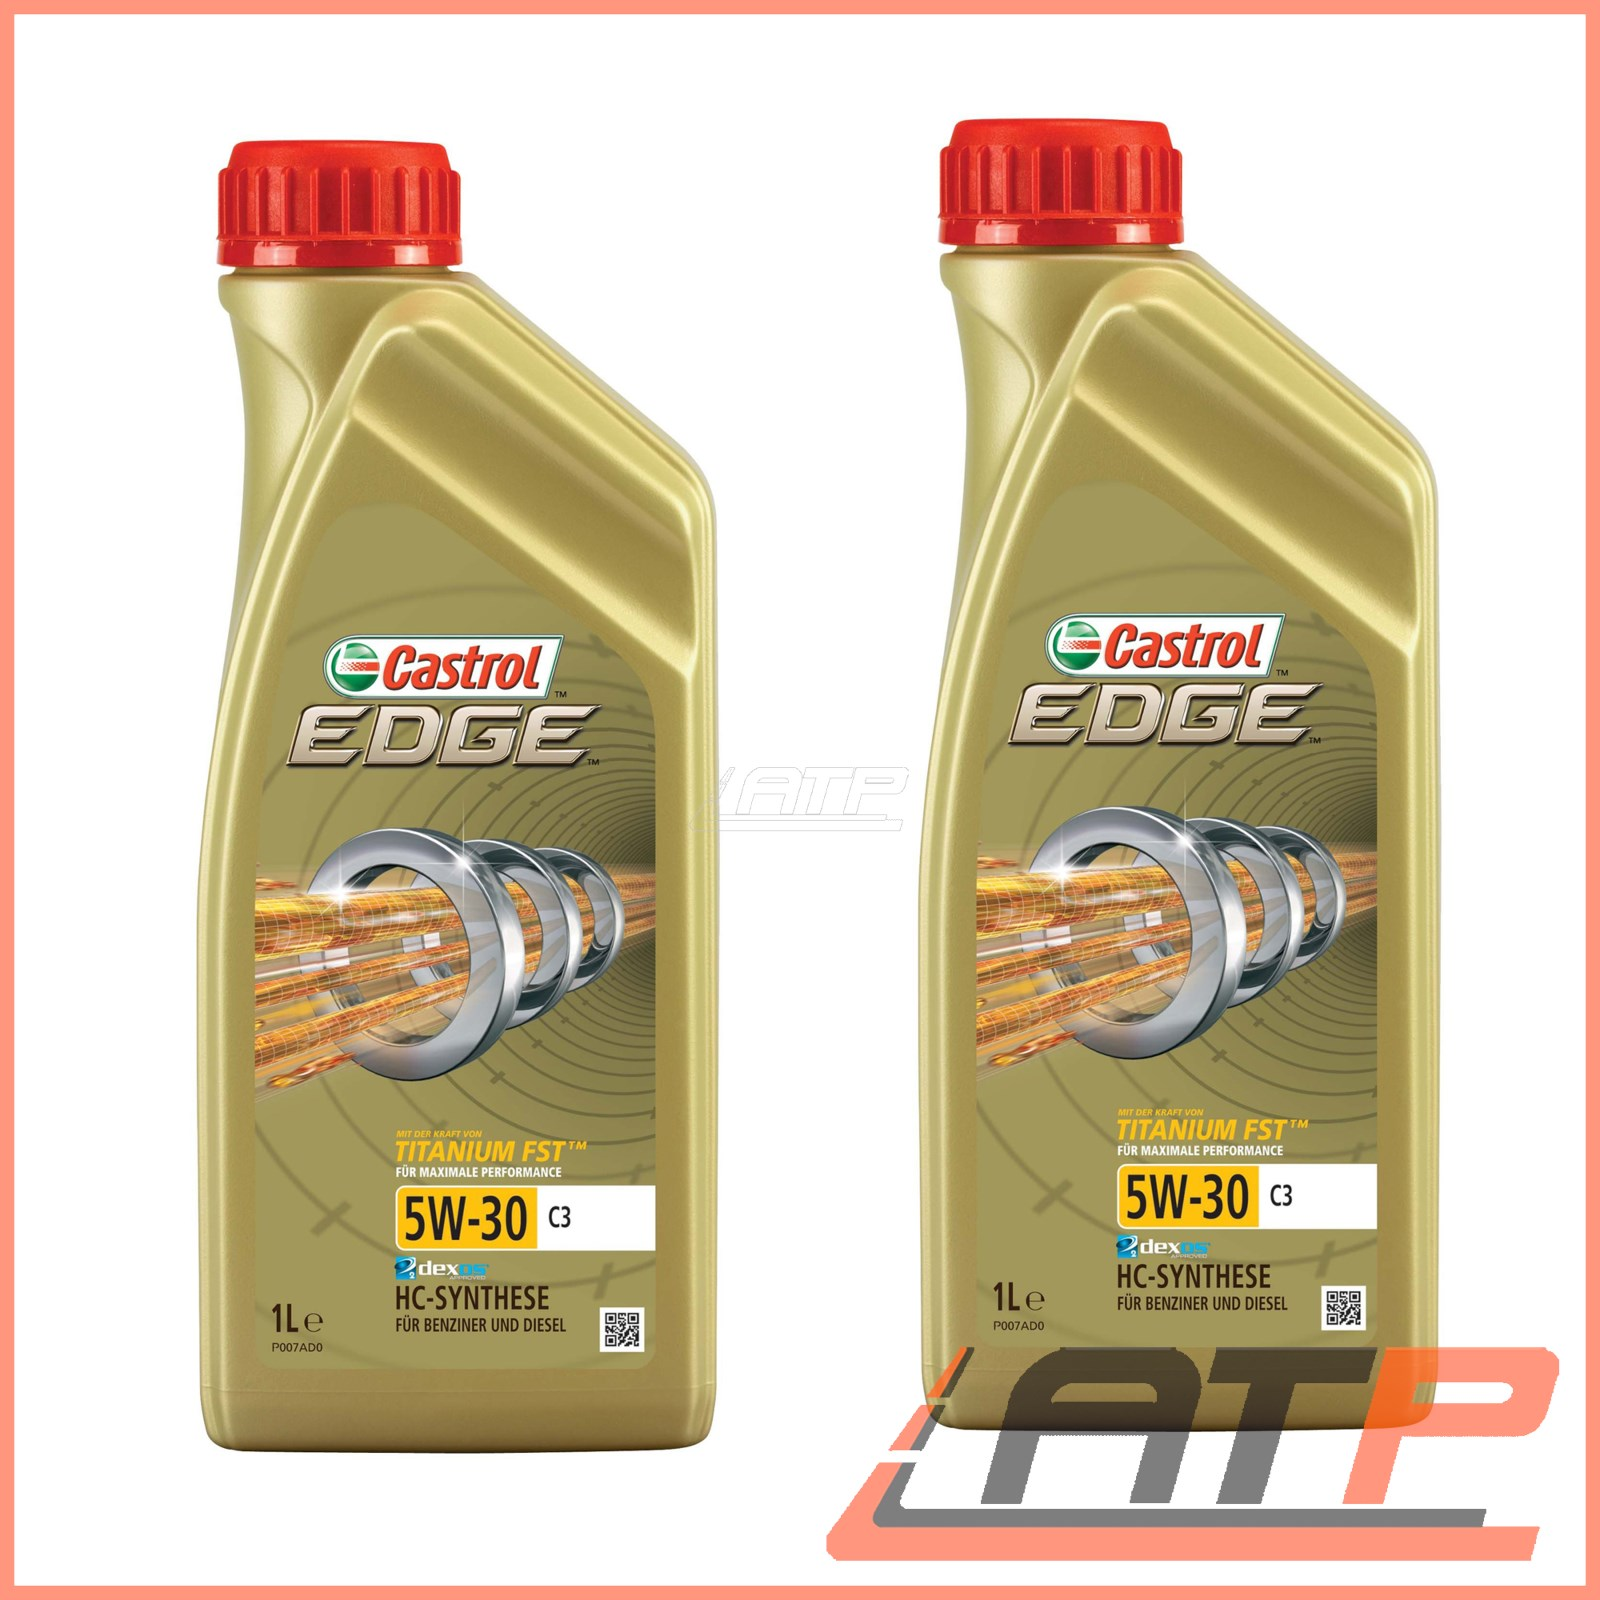 2x 1 l litre castrol edge titanium fst 5w 30 c3 engine. Black Bedroom Furniture Sets. Home Design Ideas